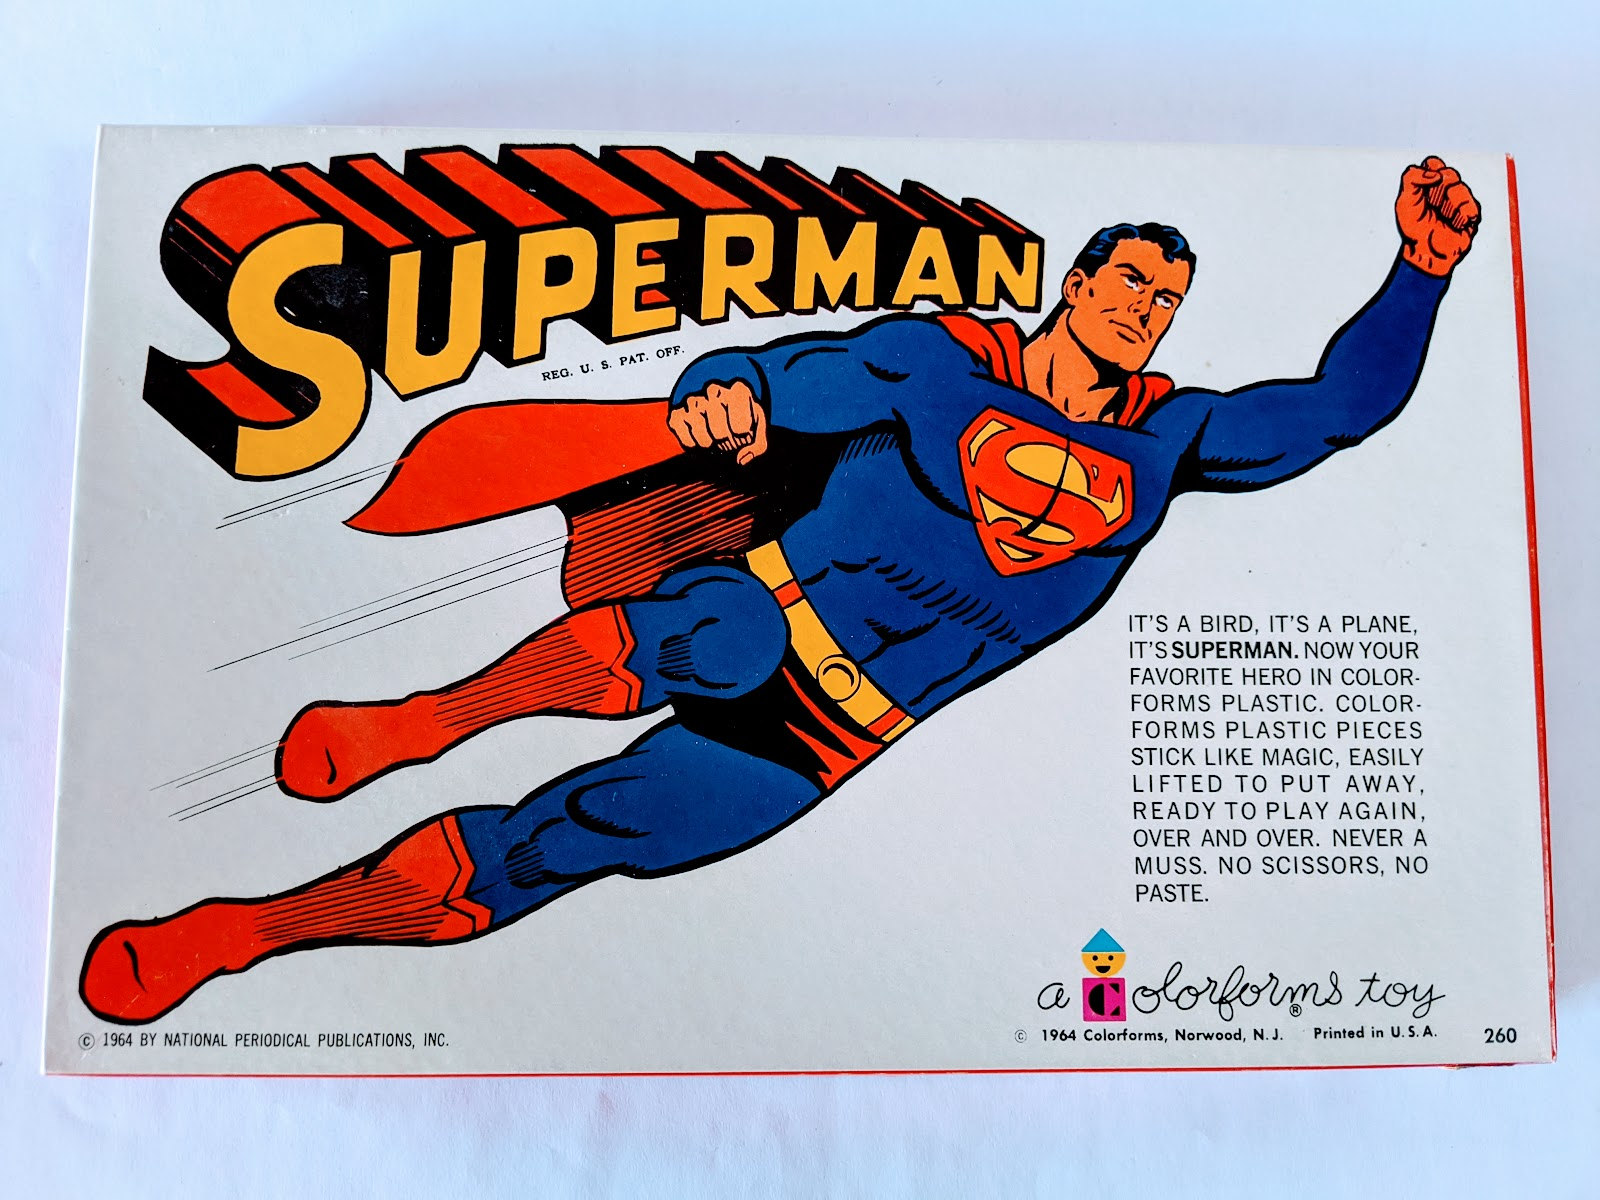 Picture of a vintage superman toy in the box from the 1960s